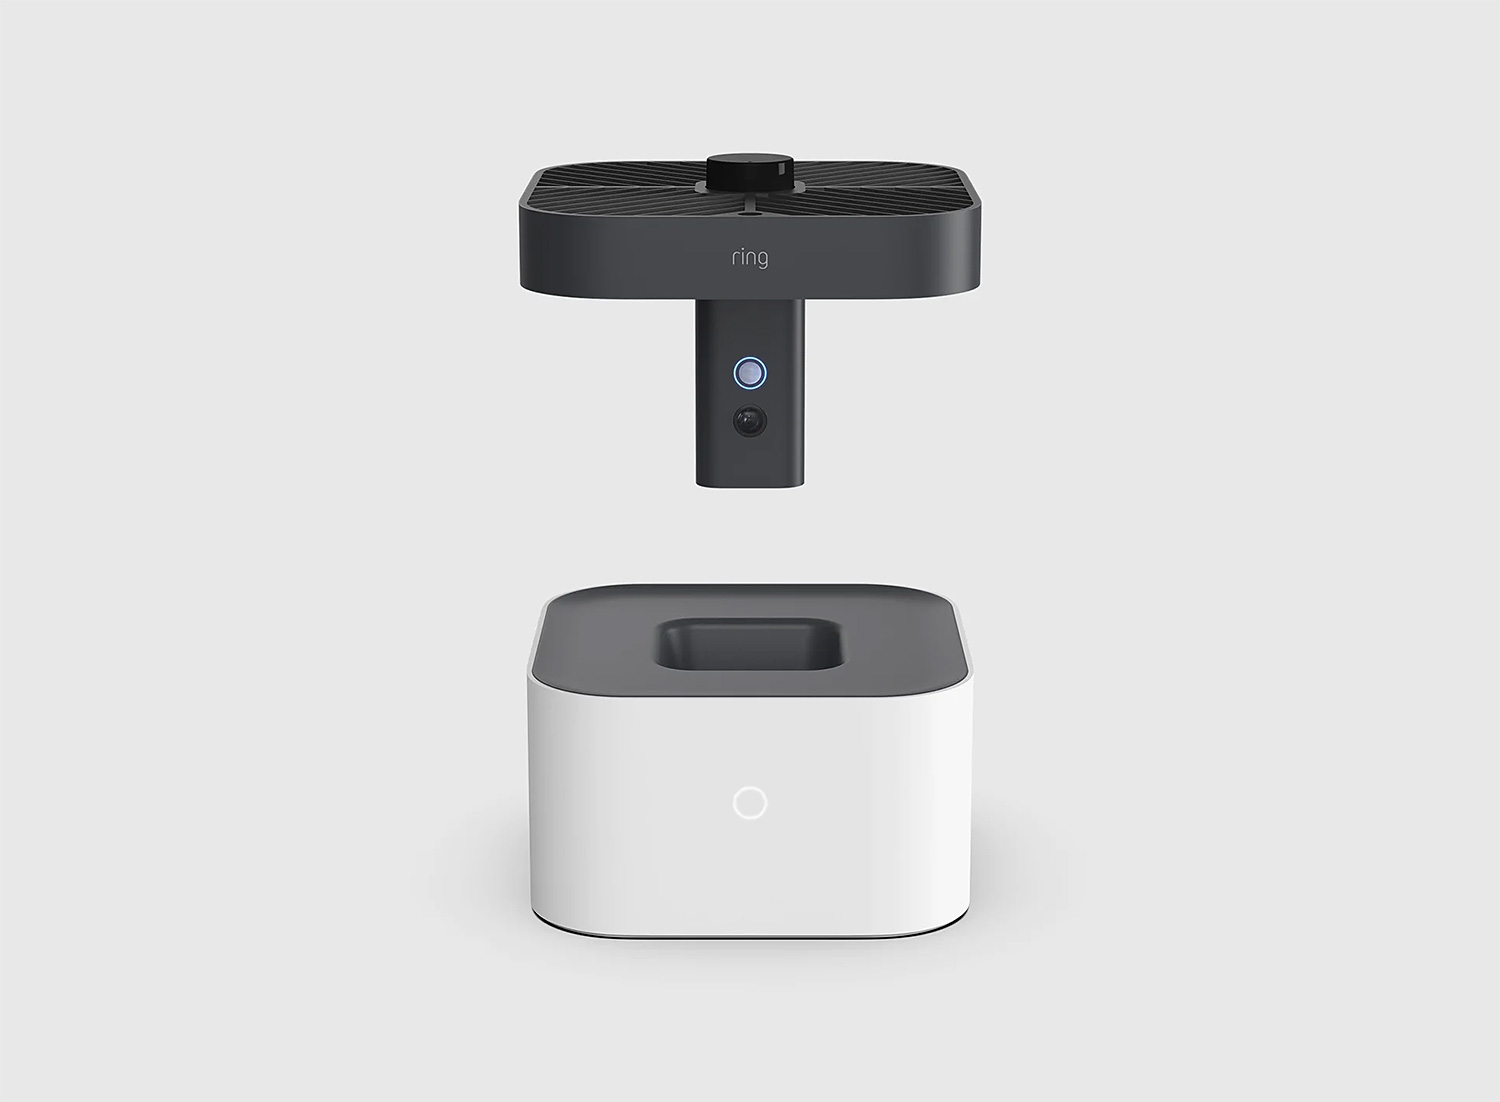 Ring Introduces Autonomous Drone Security Cam at werd.com